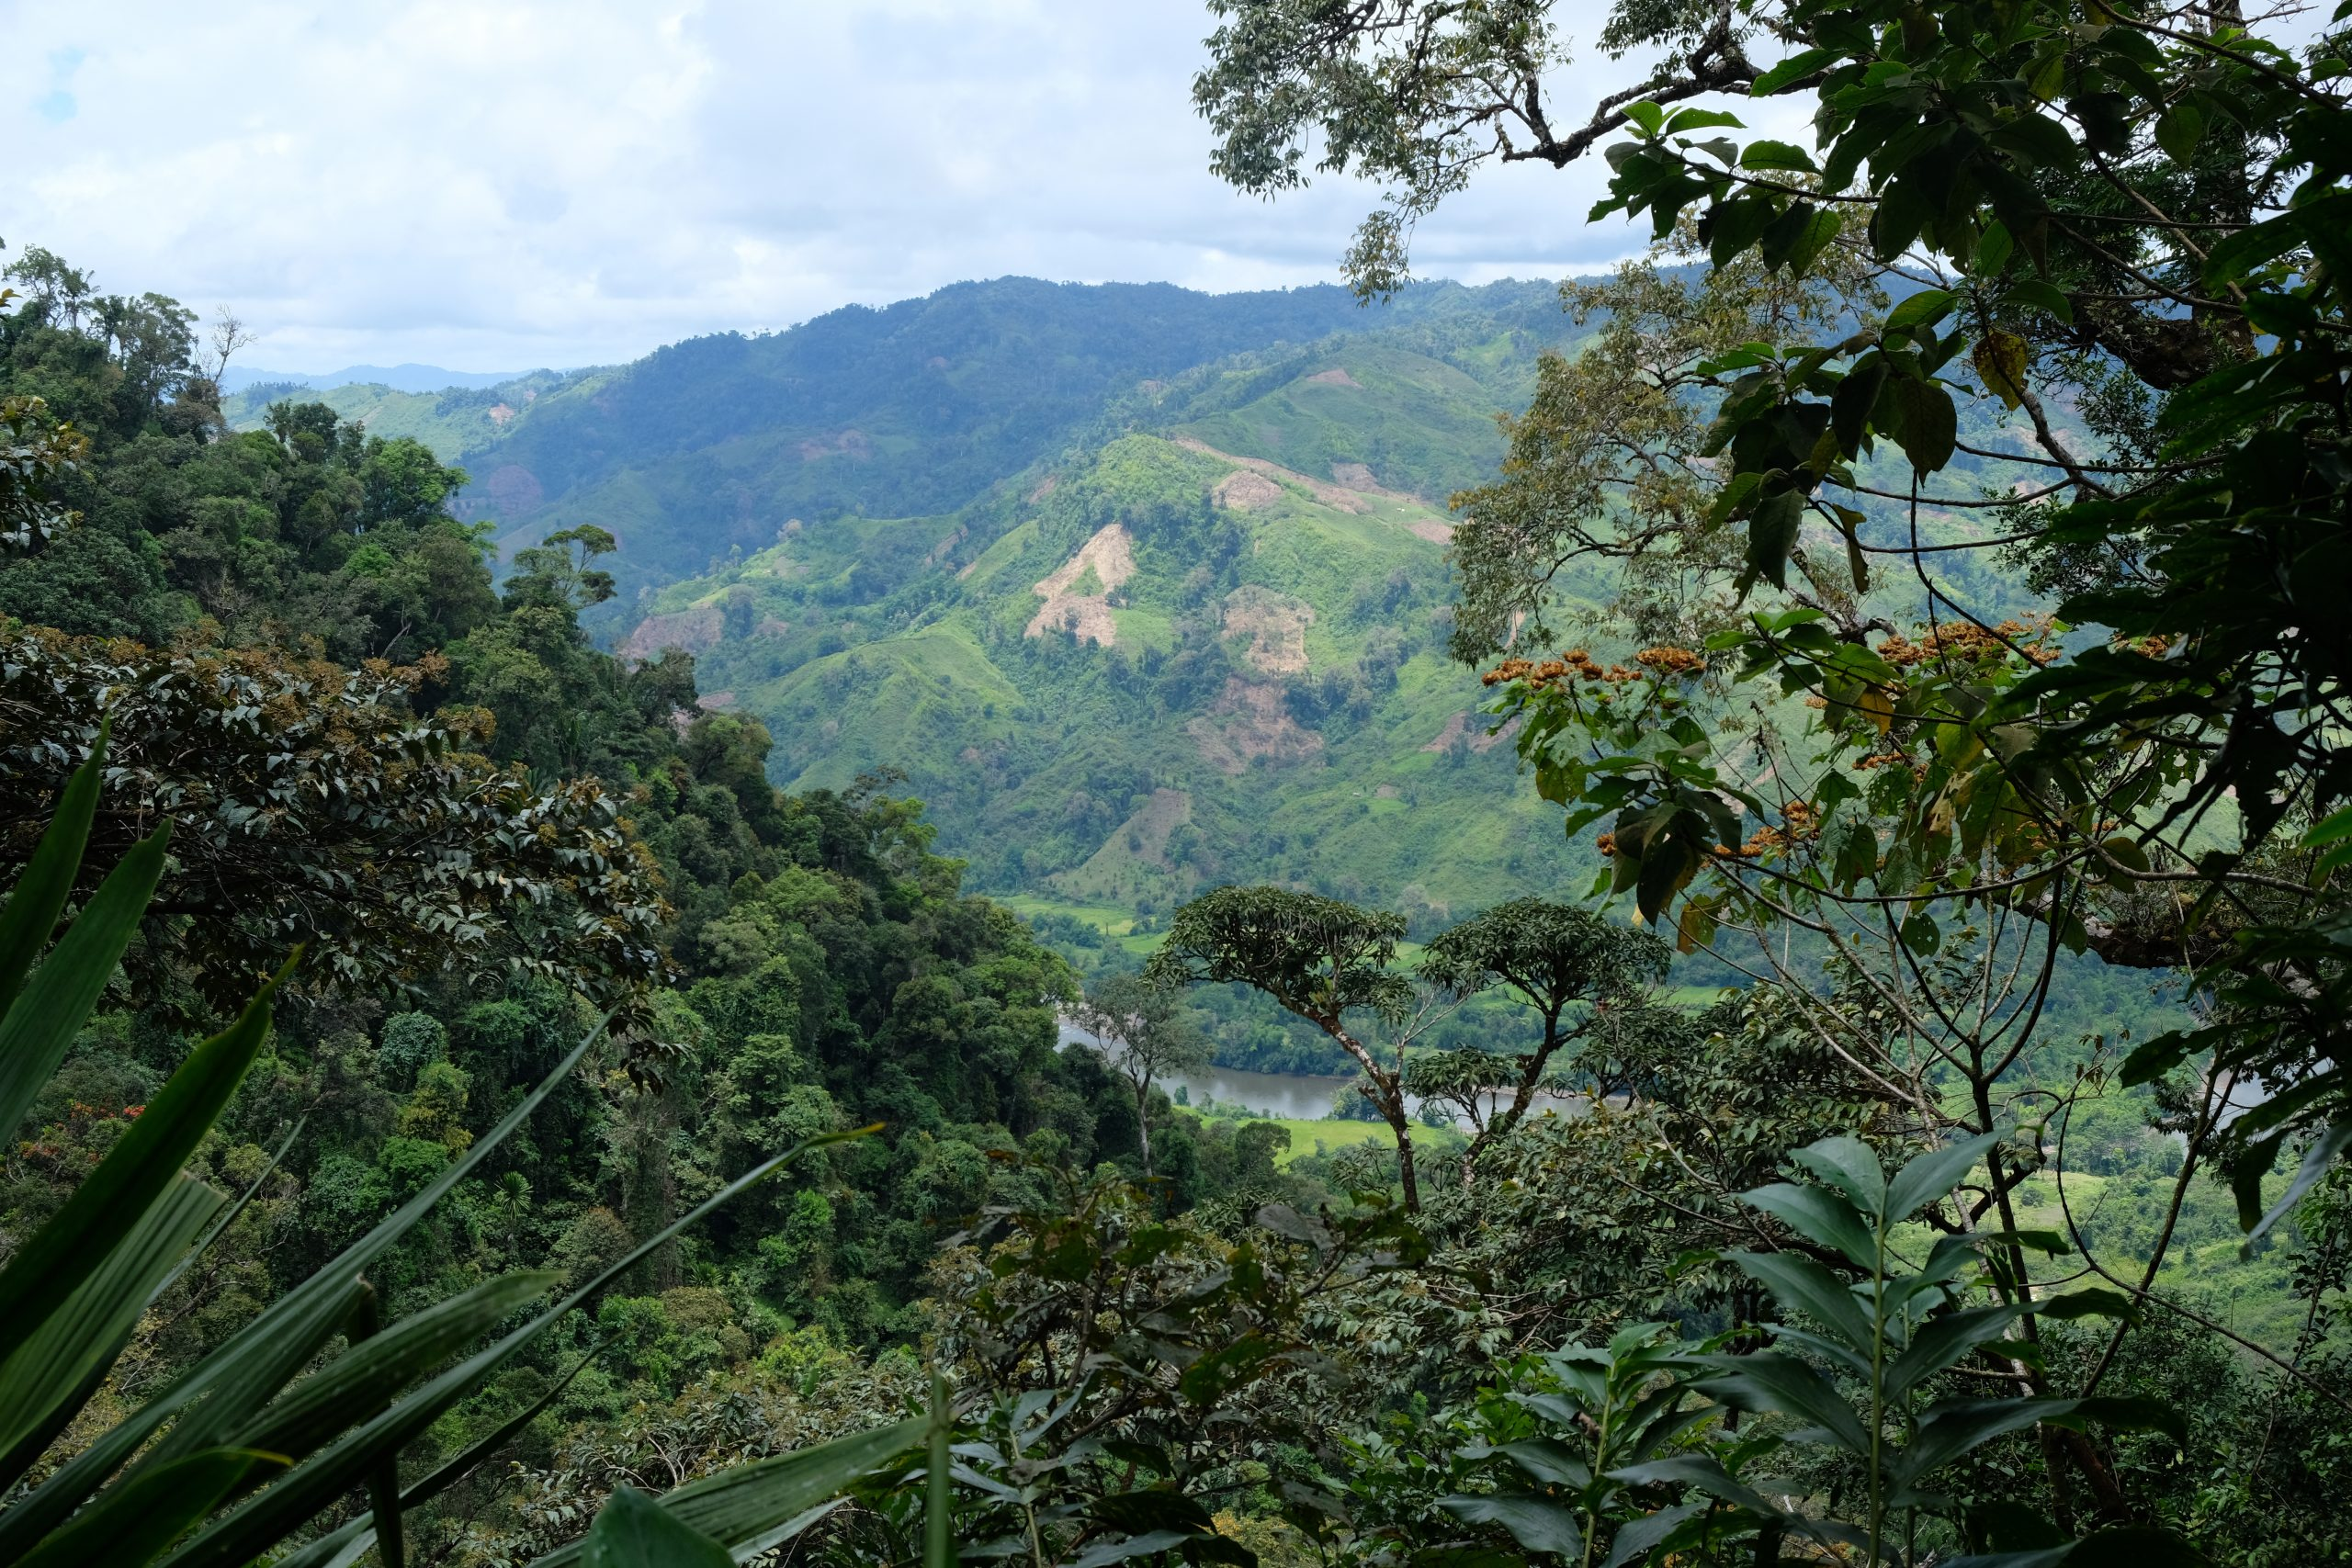 View of forested mountains, Madagascar